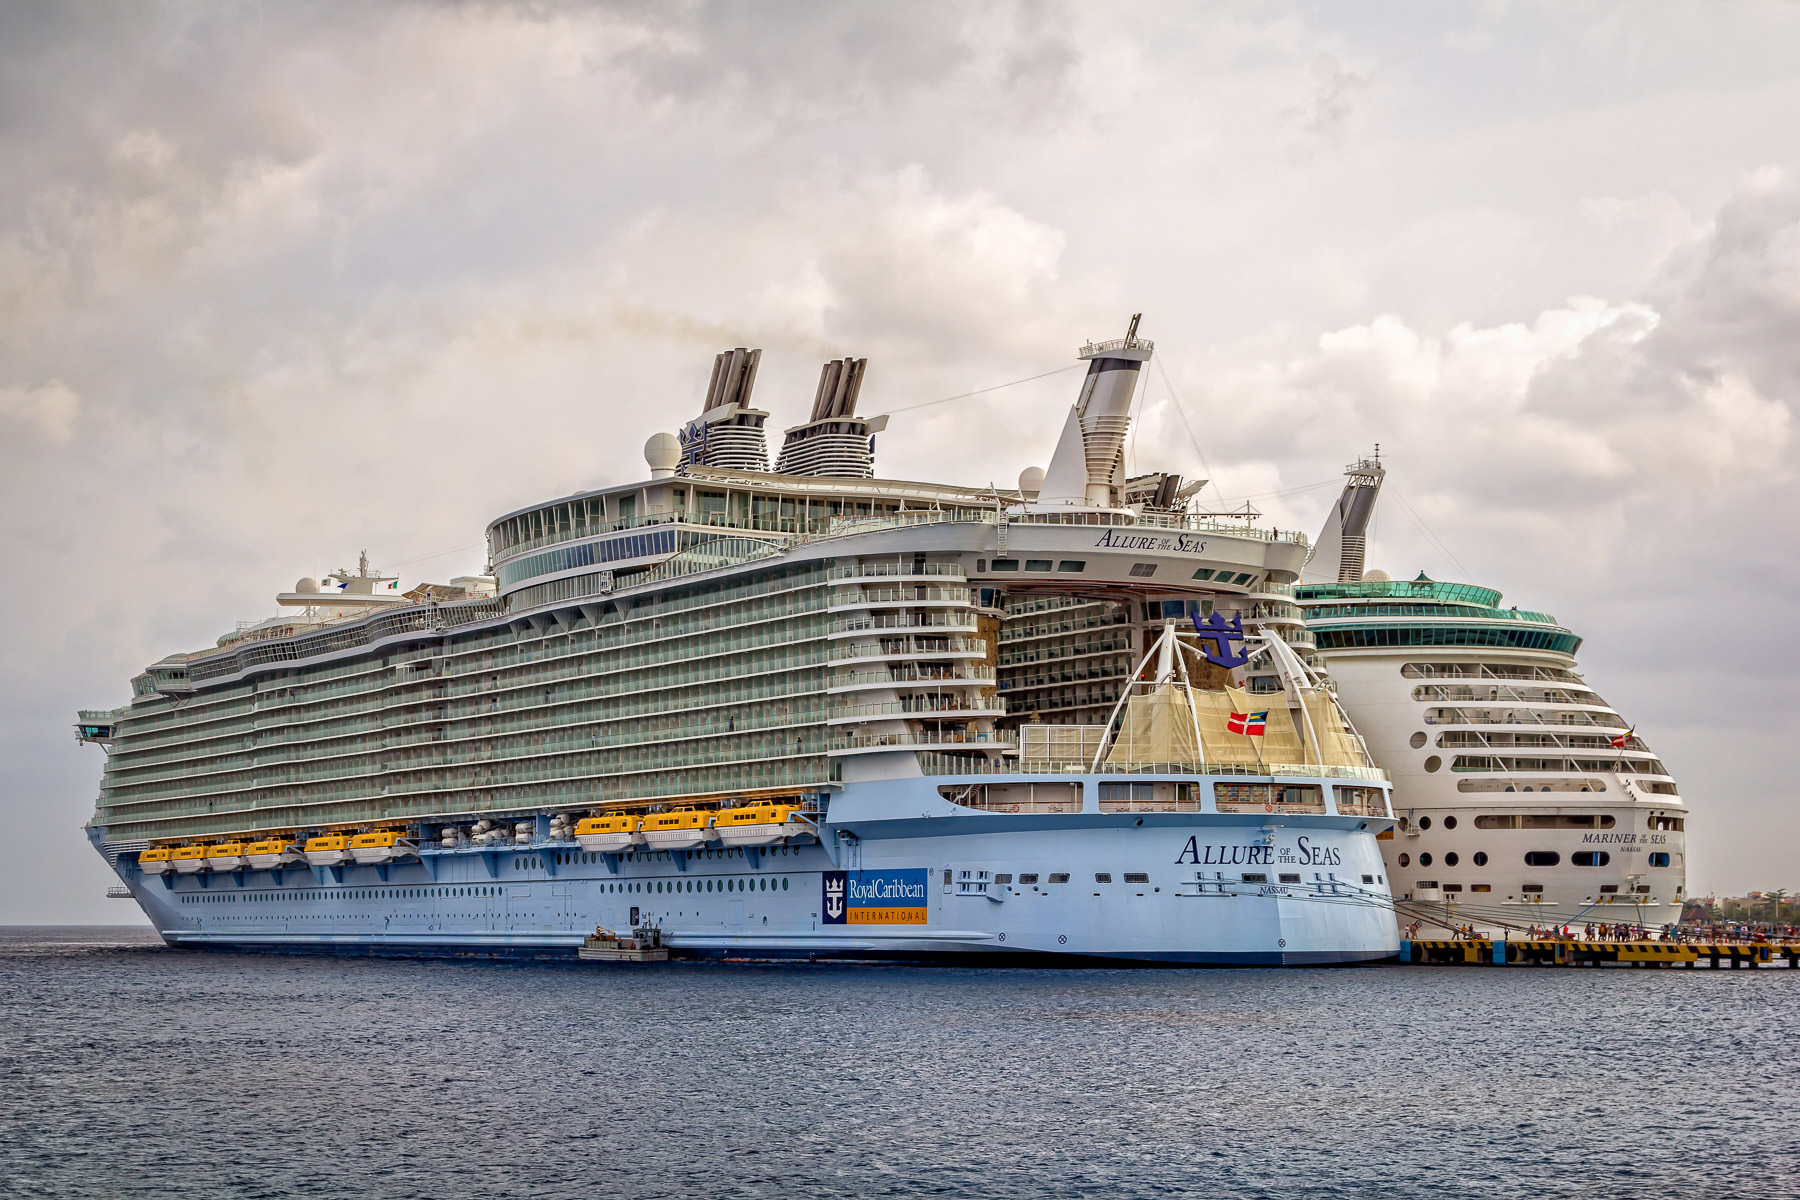 The Royal Caribbean cruise ships Allure of the Seas and Mariner of the Seas docked at Cozumel, Mexico on an overcast day.